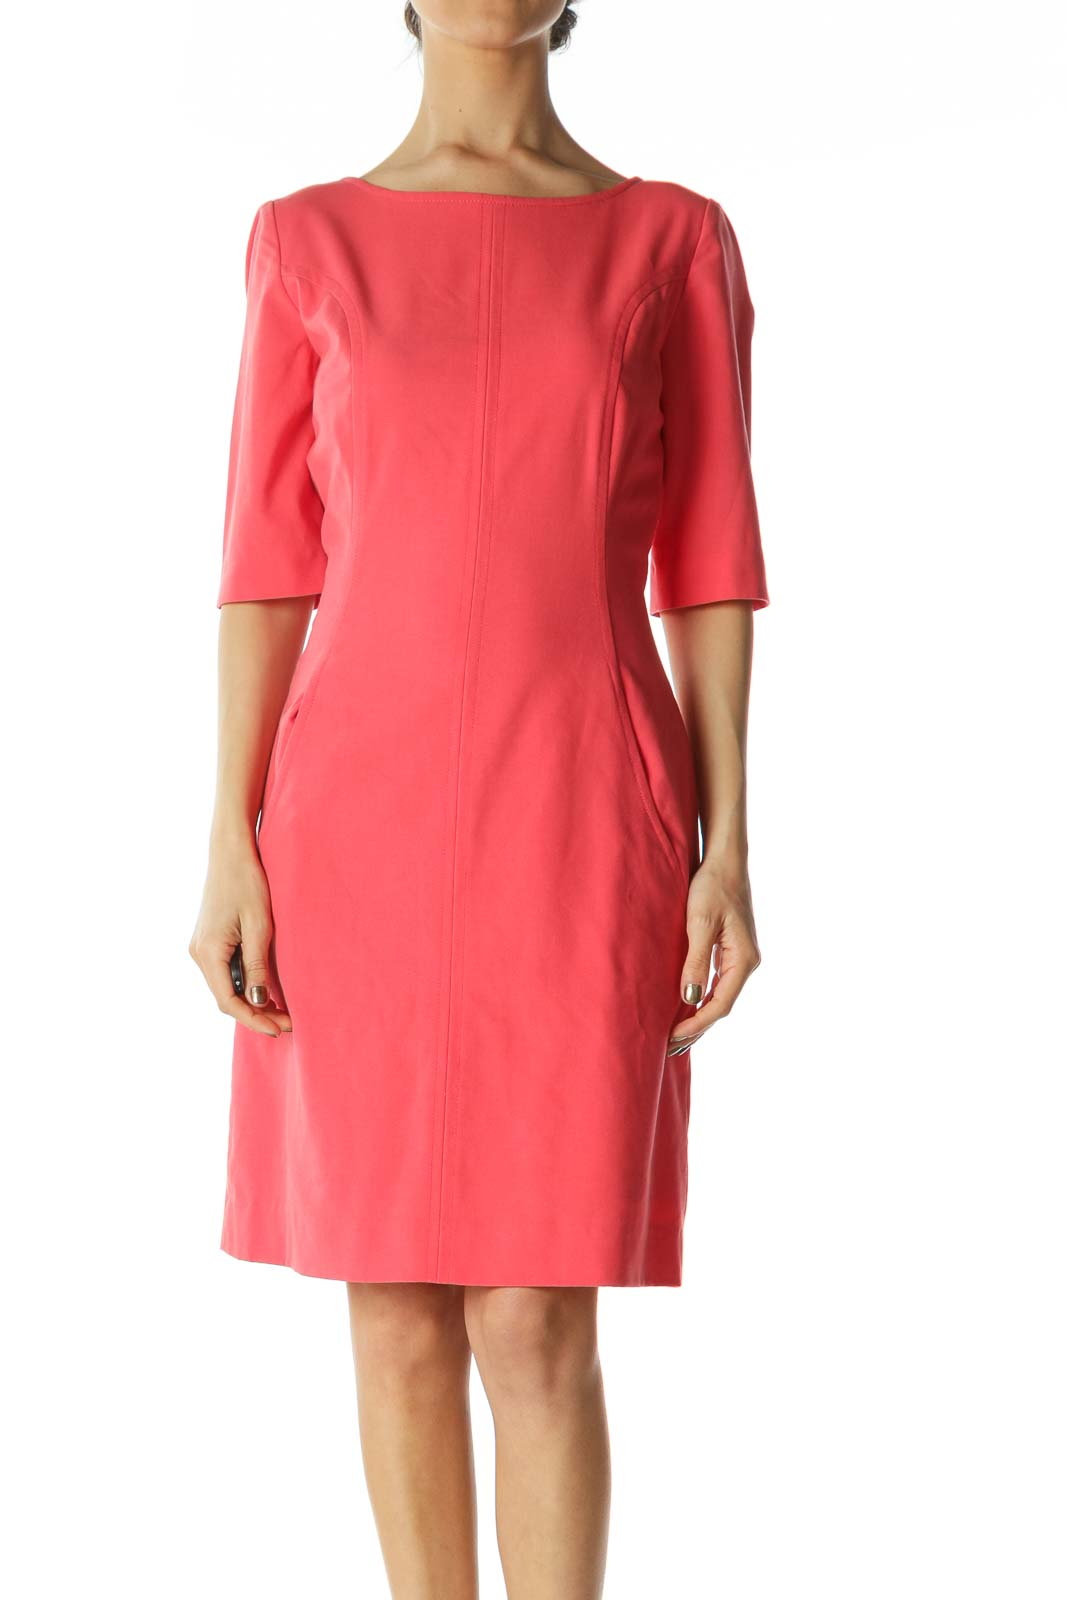 Coral-Pink 3/4-Sleeve Pocketed Work Dress Front